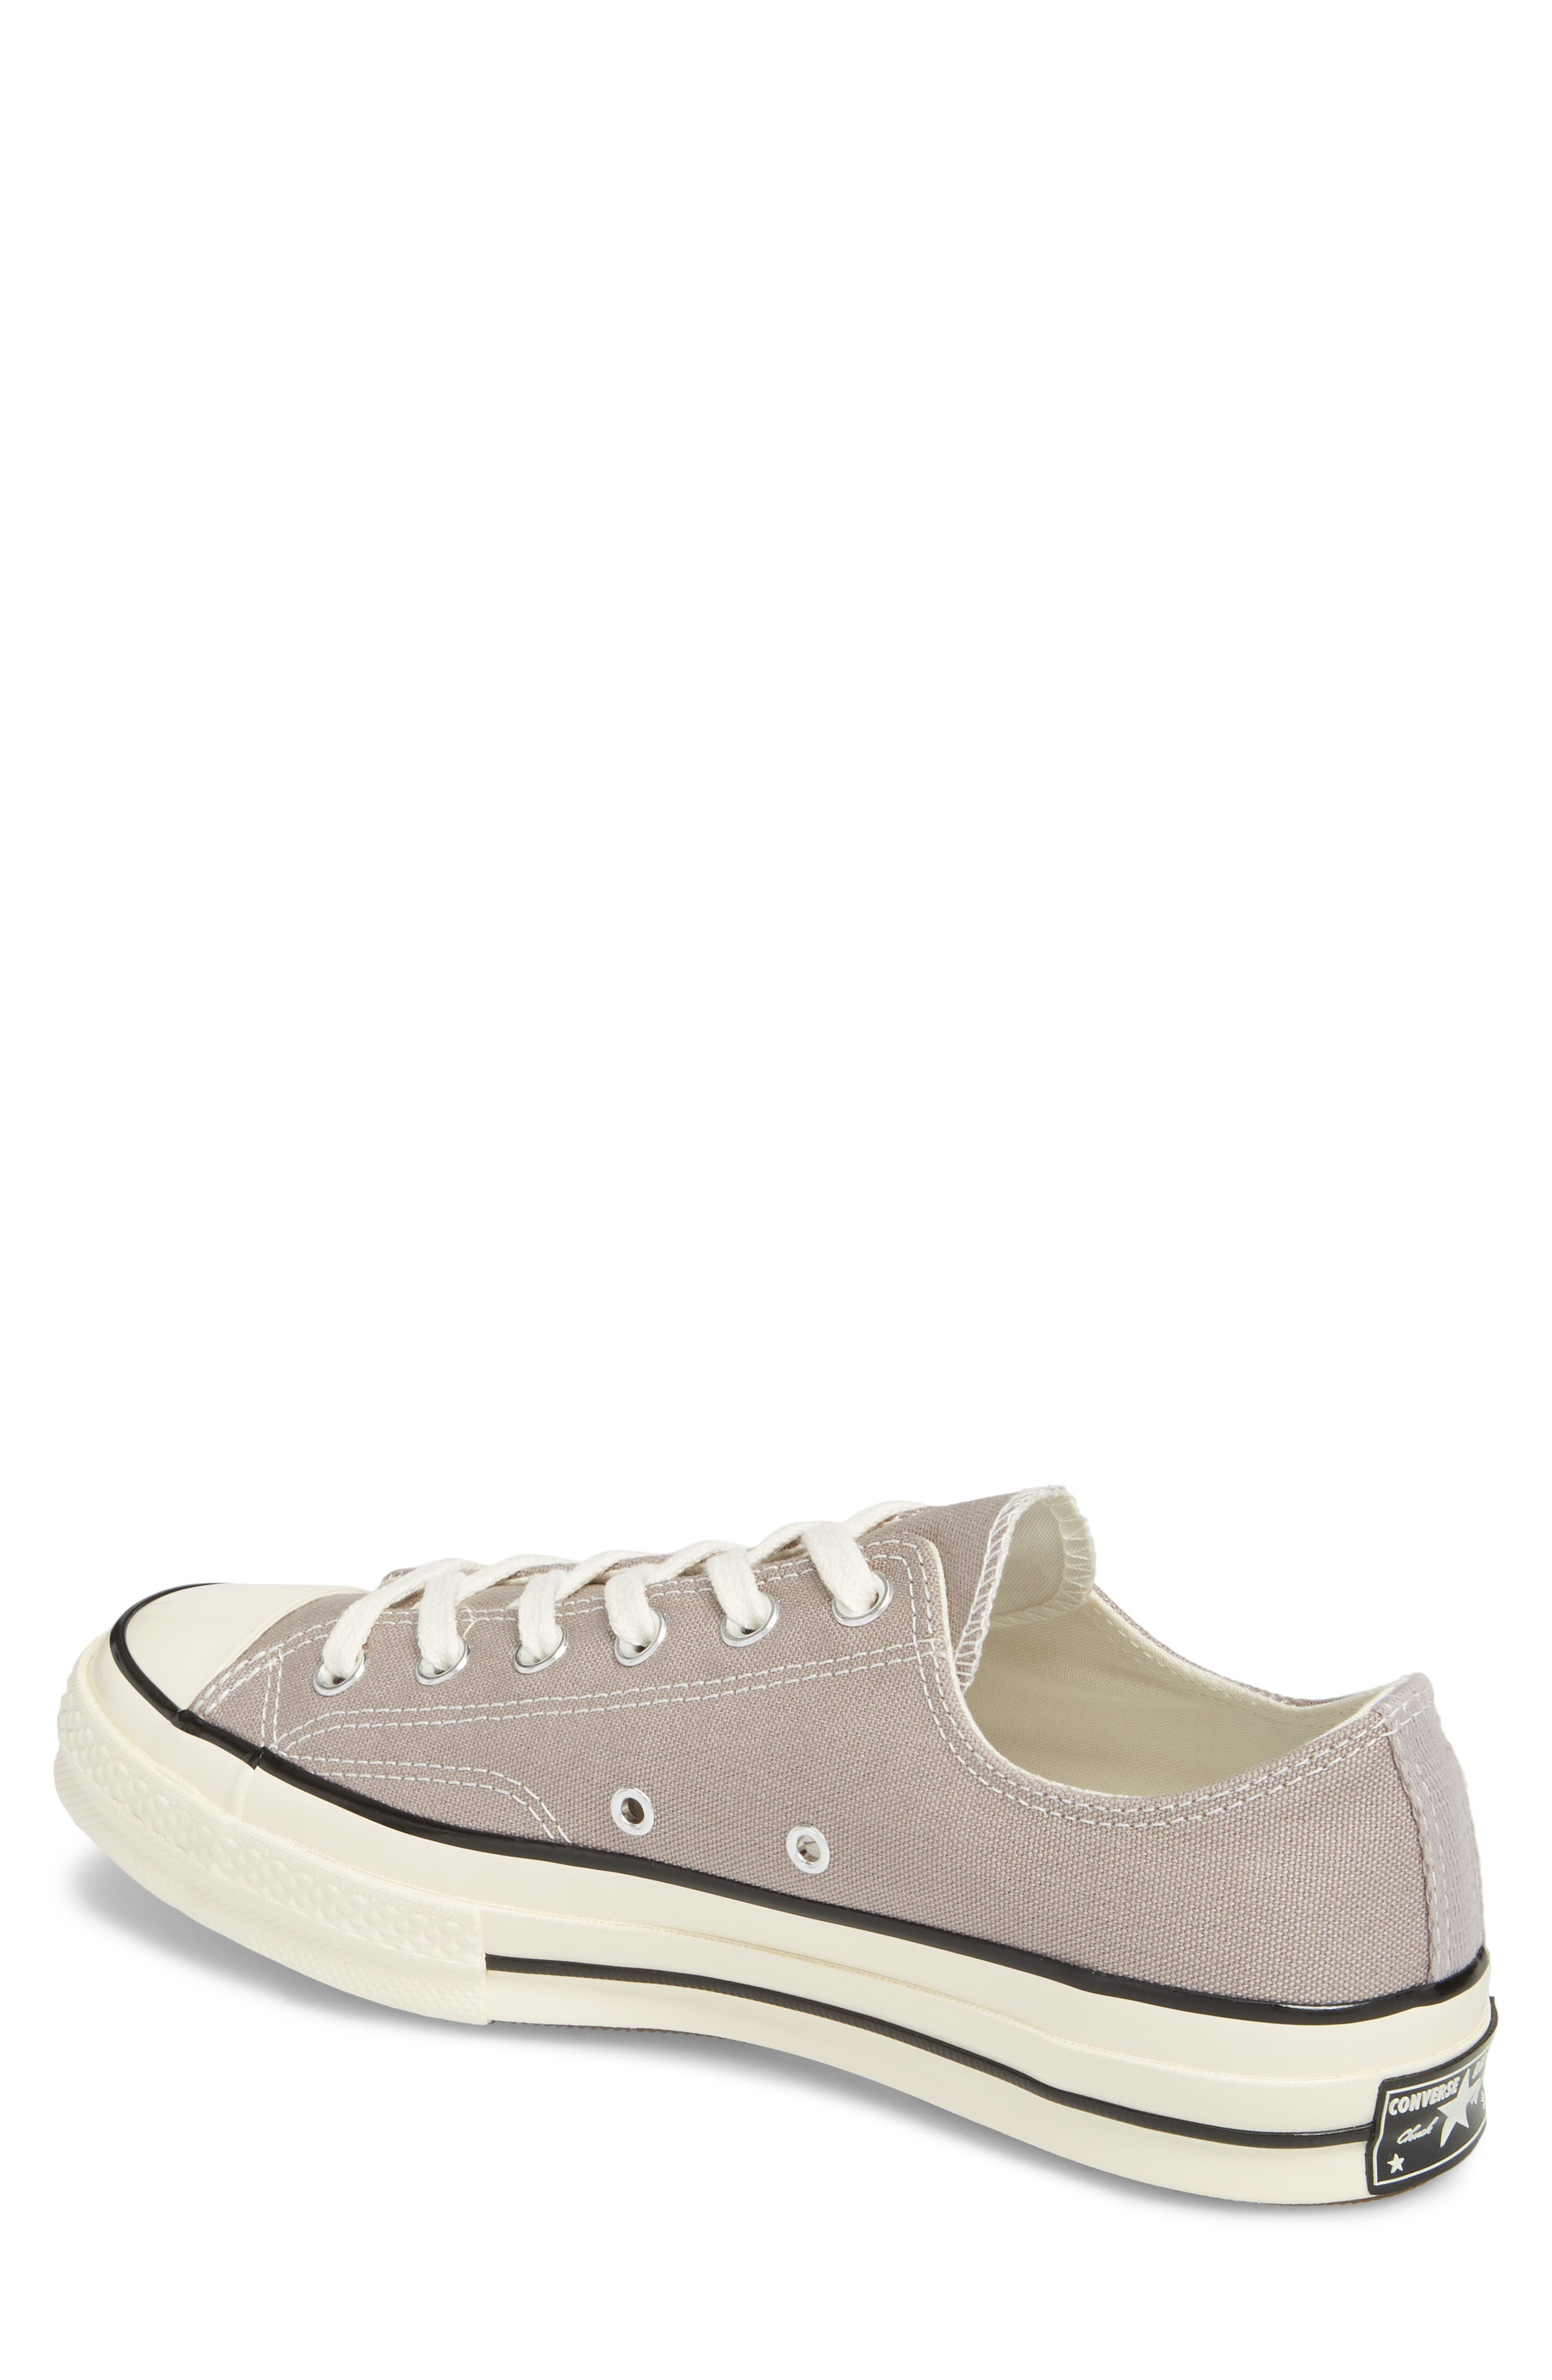 Chuck Taylor<sup>®</sup> All Star<sup>®</sup> 70 Heritage Sneaker,                             Alternate thumbnail 2, color,                             035